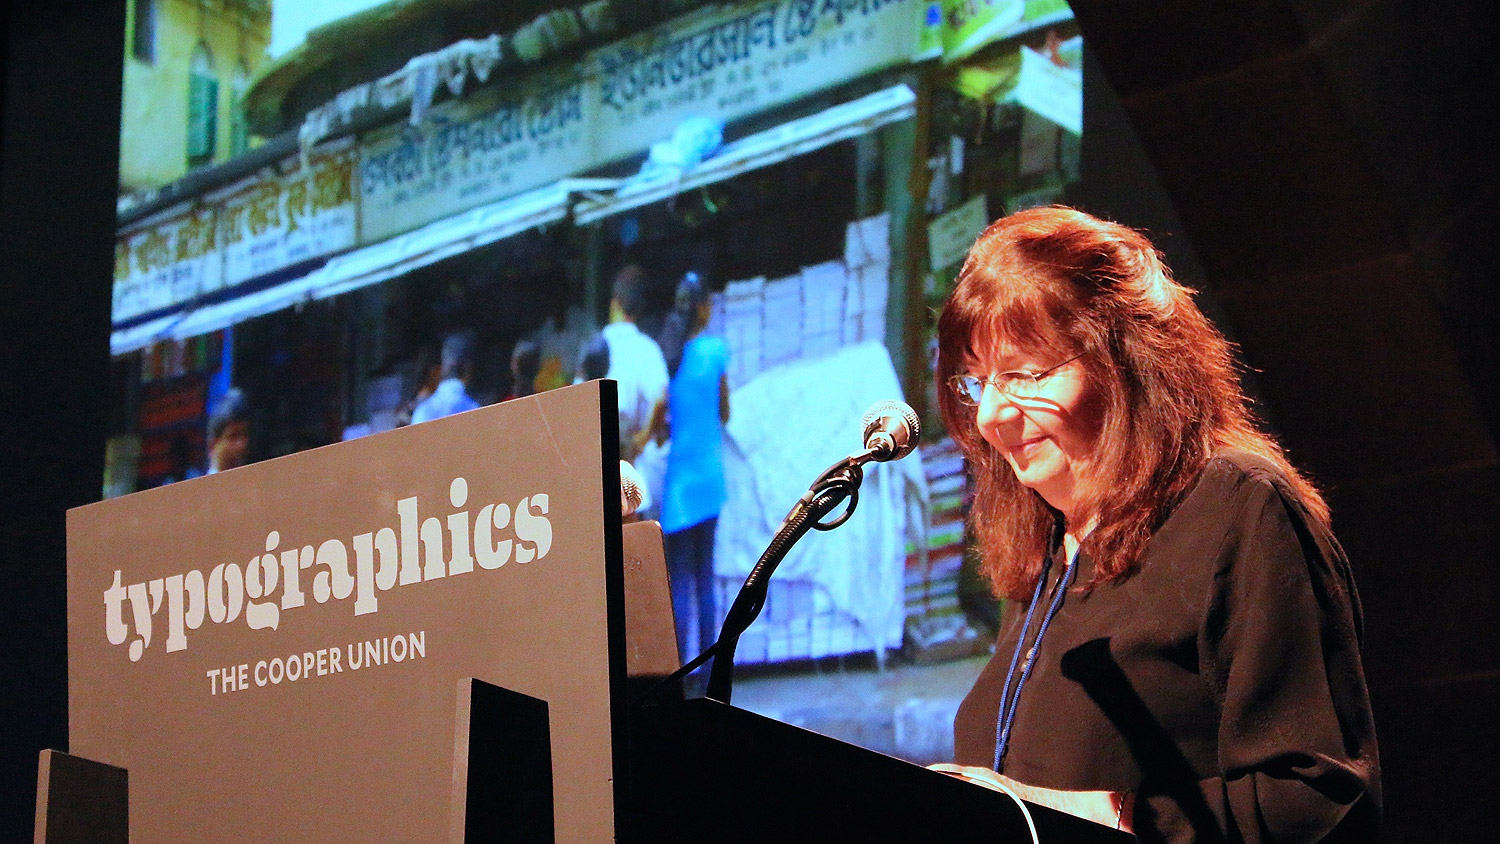 Dr. Fiona Ross speaking at Typographics NYC 2016. Photo © 2016 Henrique Nardi.